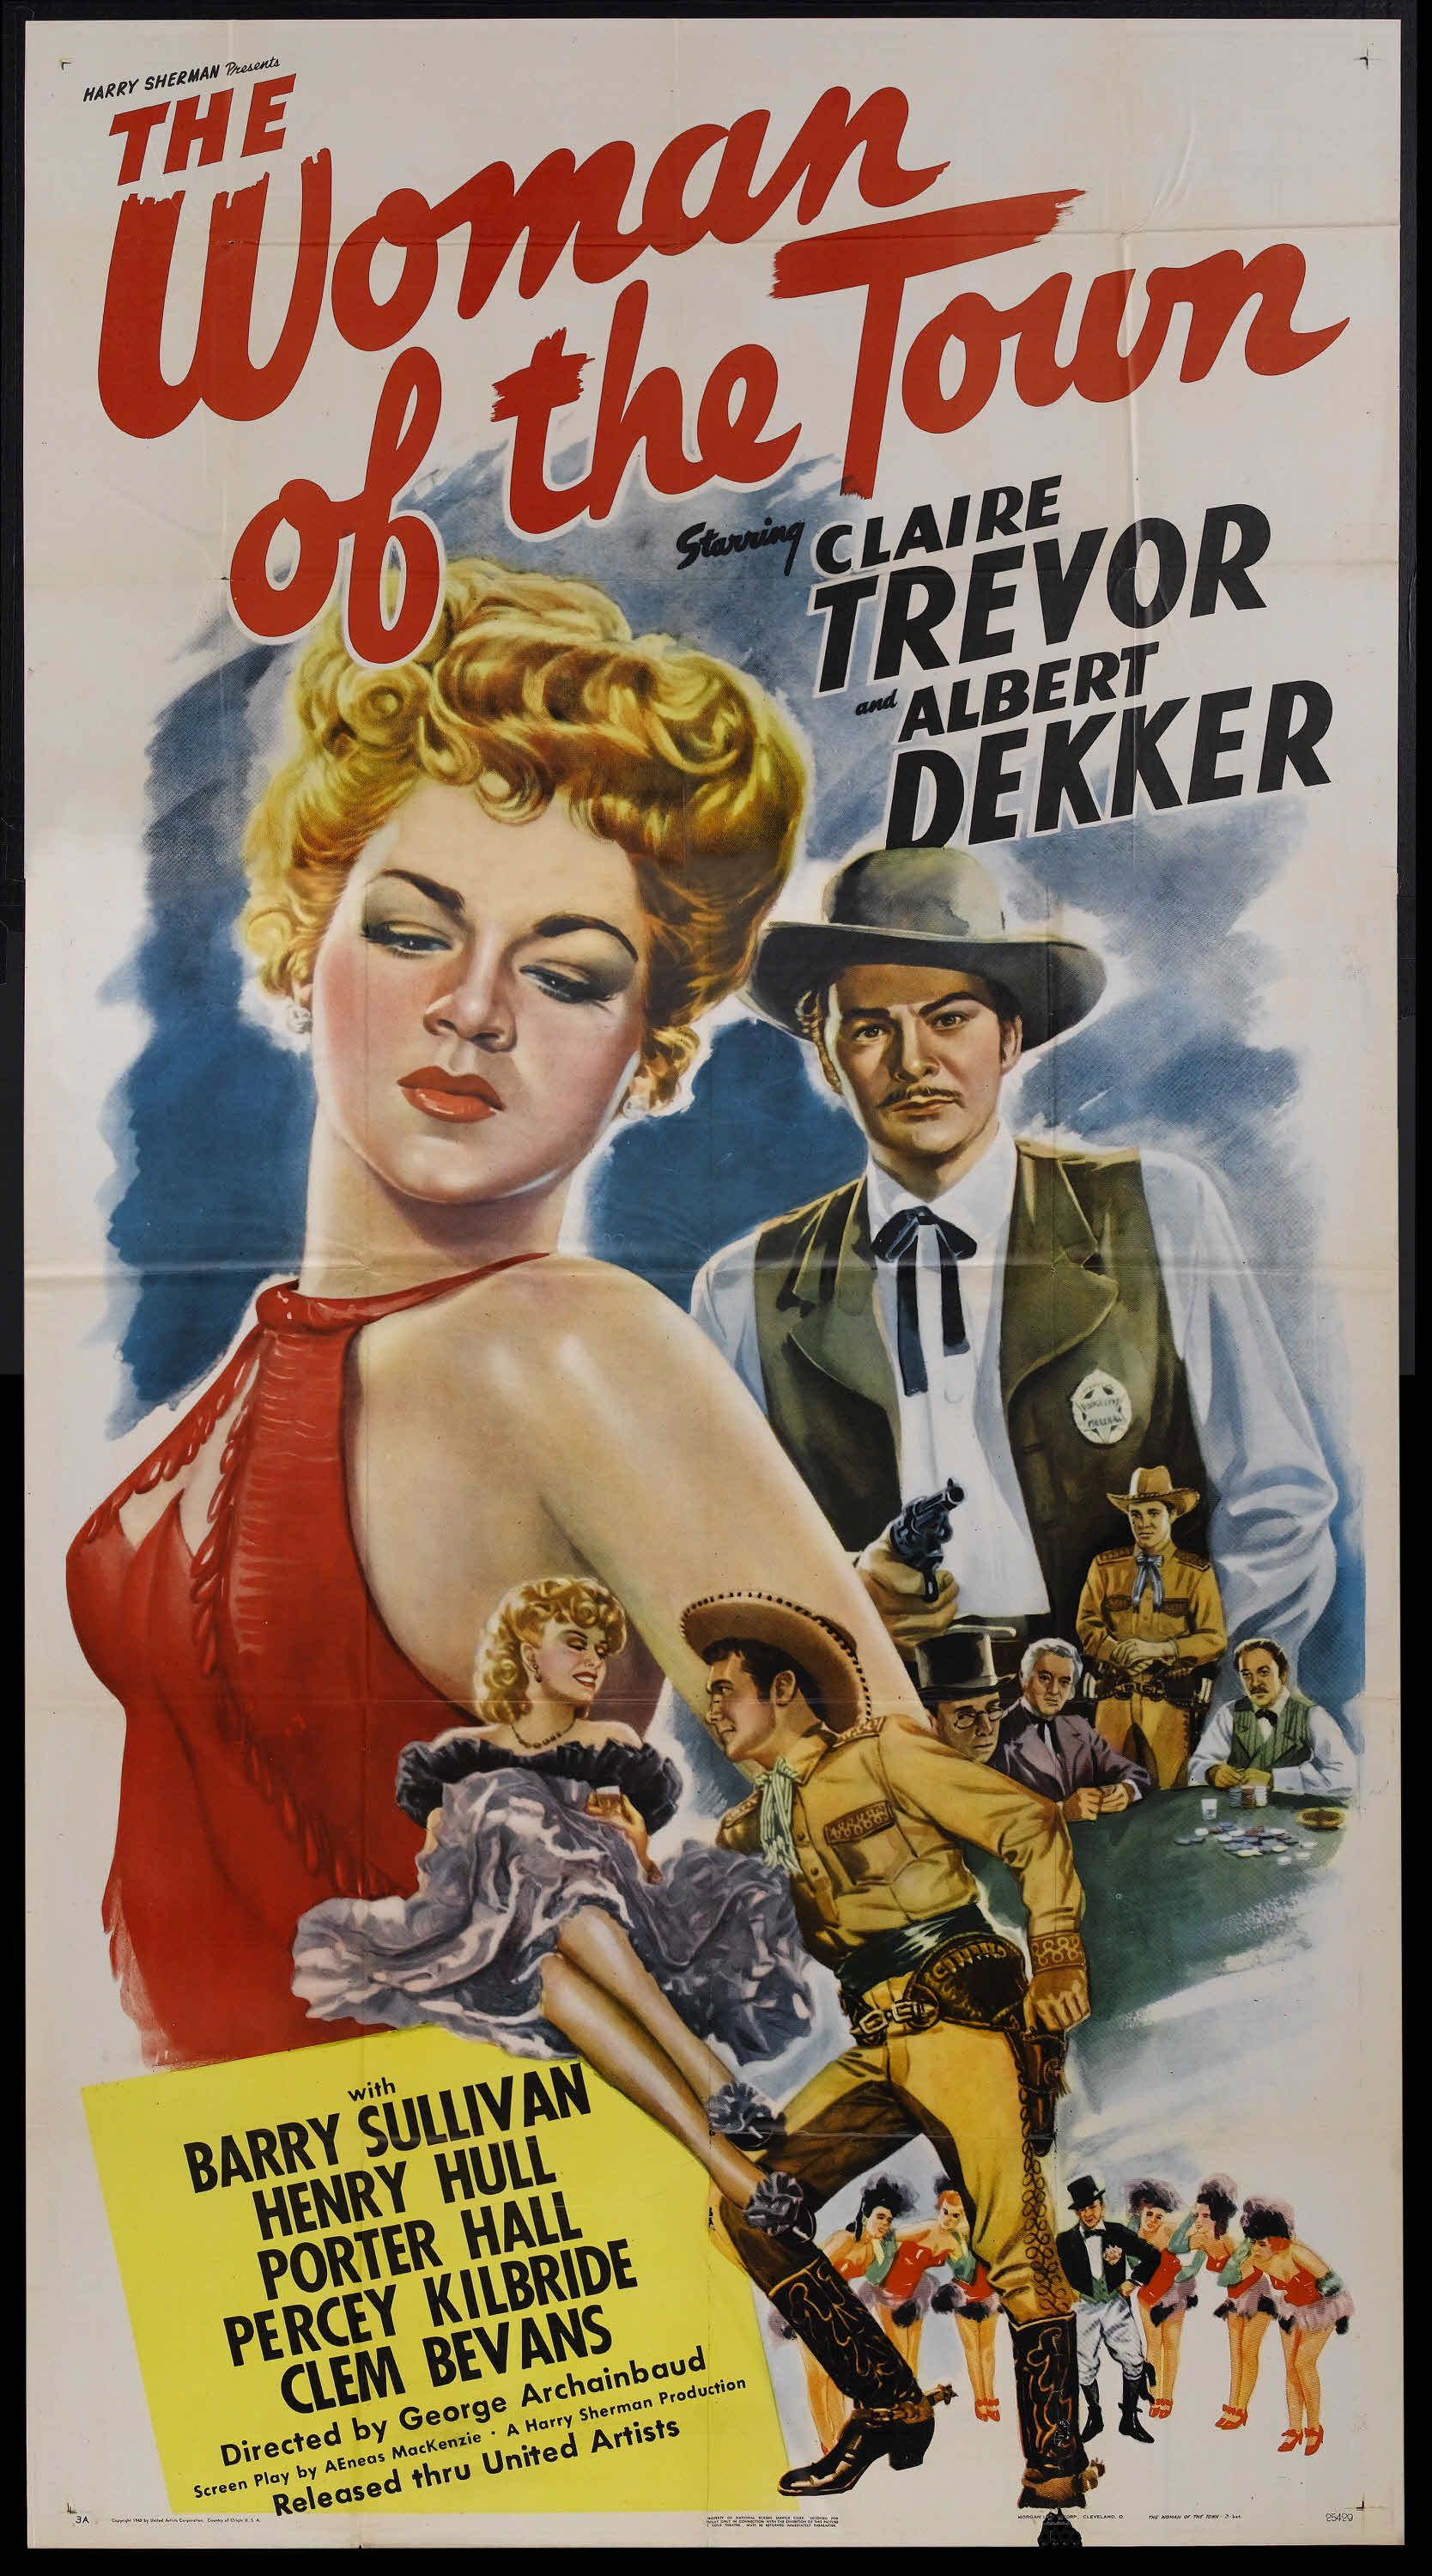 The Woman of the Town (1943) Stars: Claire Trevor, Albert Dekker, Barry Sullivan, Henry Hull, Porter Hall, Percy Kilbride,Beryl Wallace ~ Director: George Archainbaud (Nominated for an Oscar for Best Music, Scoring of a Dramatic or Comedy Picture by  Miklós Rózsa 1945)